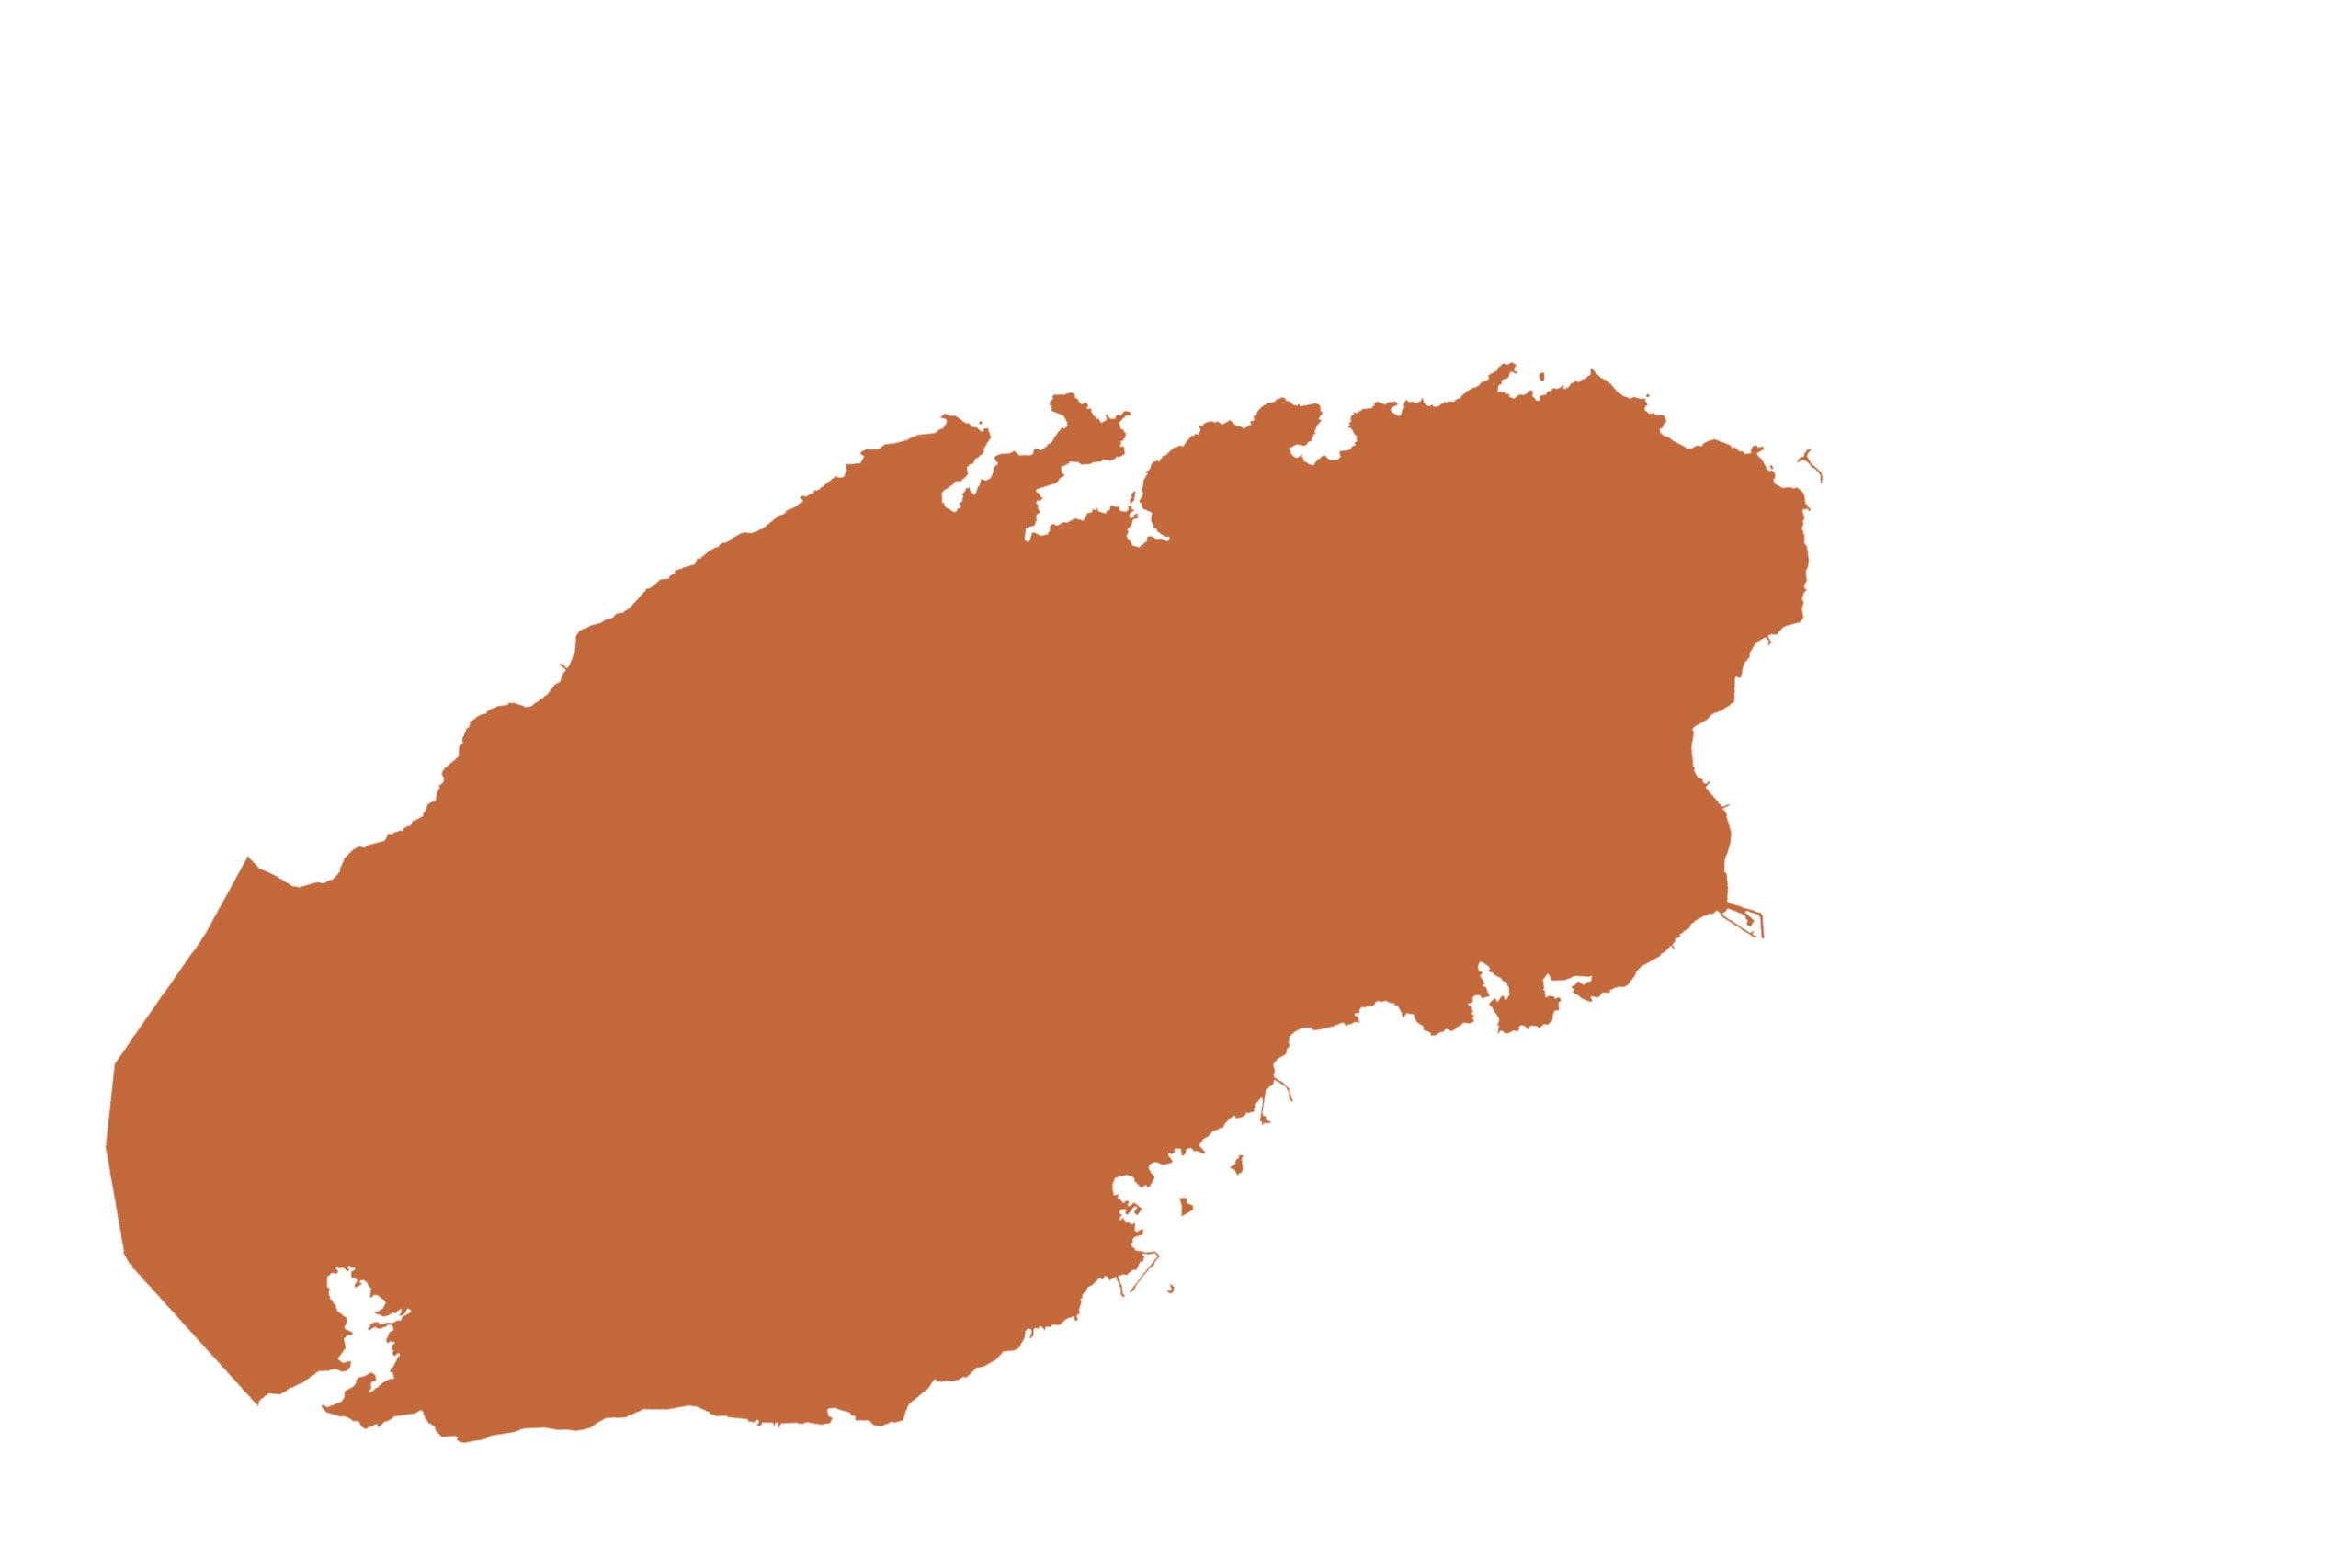 Qatar map in orange from list of missing countries for 1 Earth City  Portrait Photography Project aka NYChildren by Danny Goldfield.